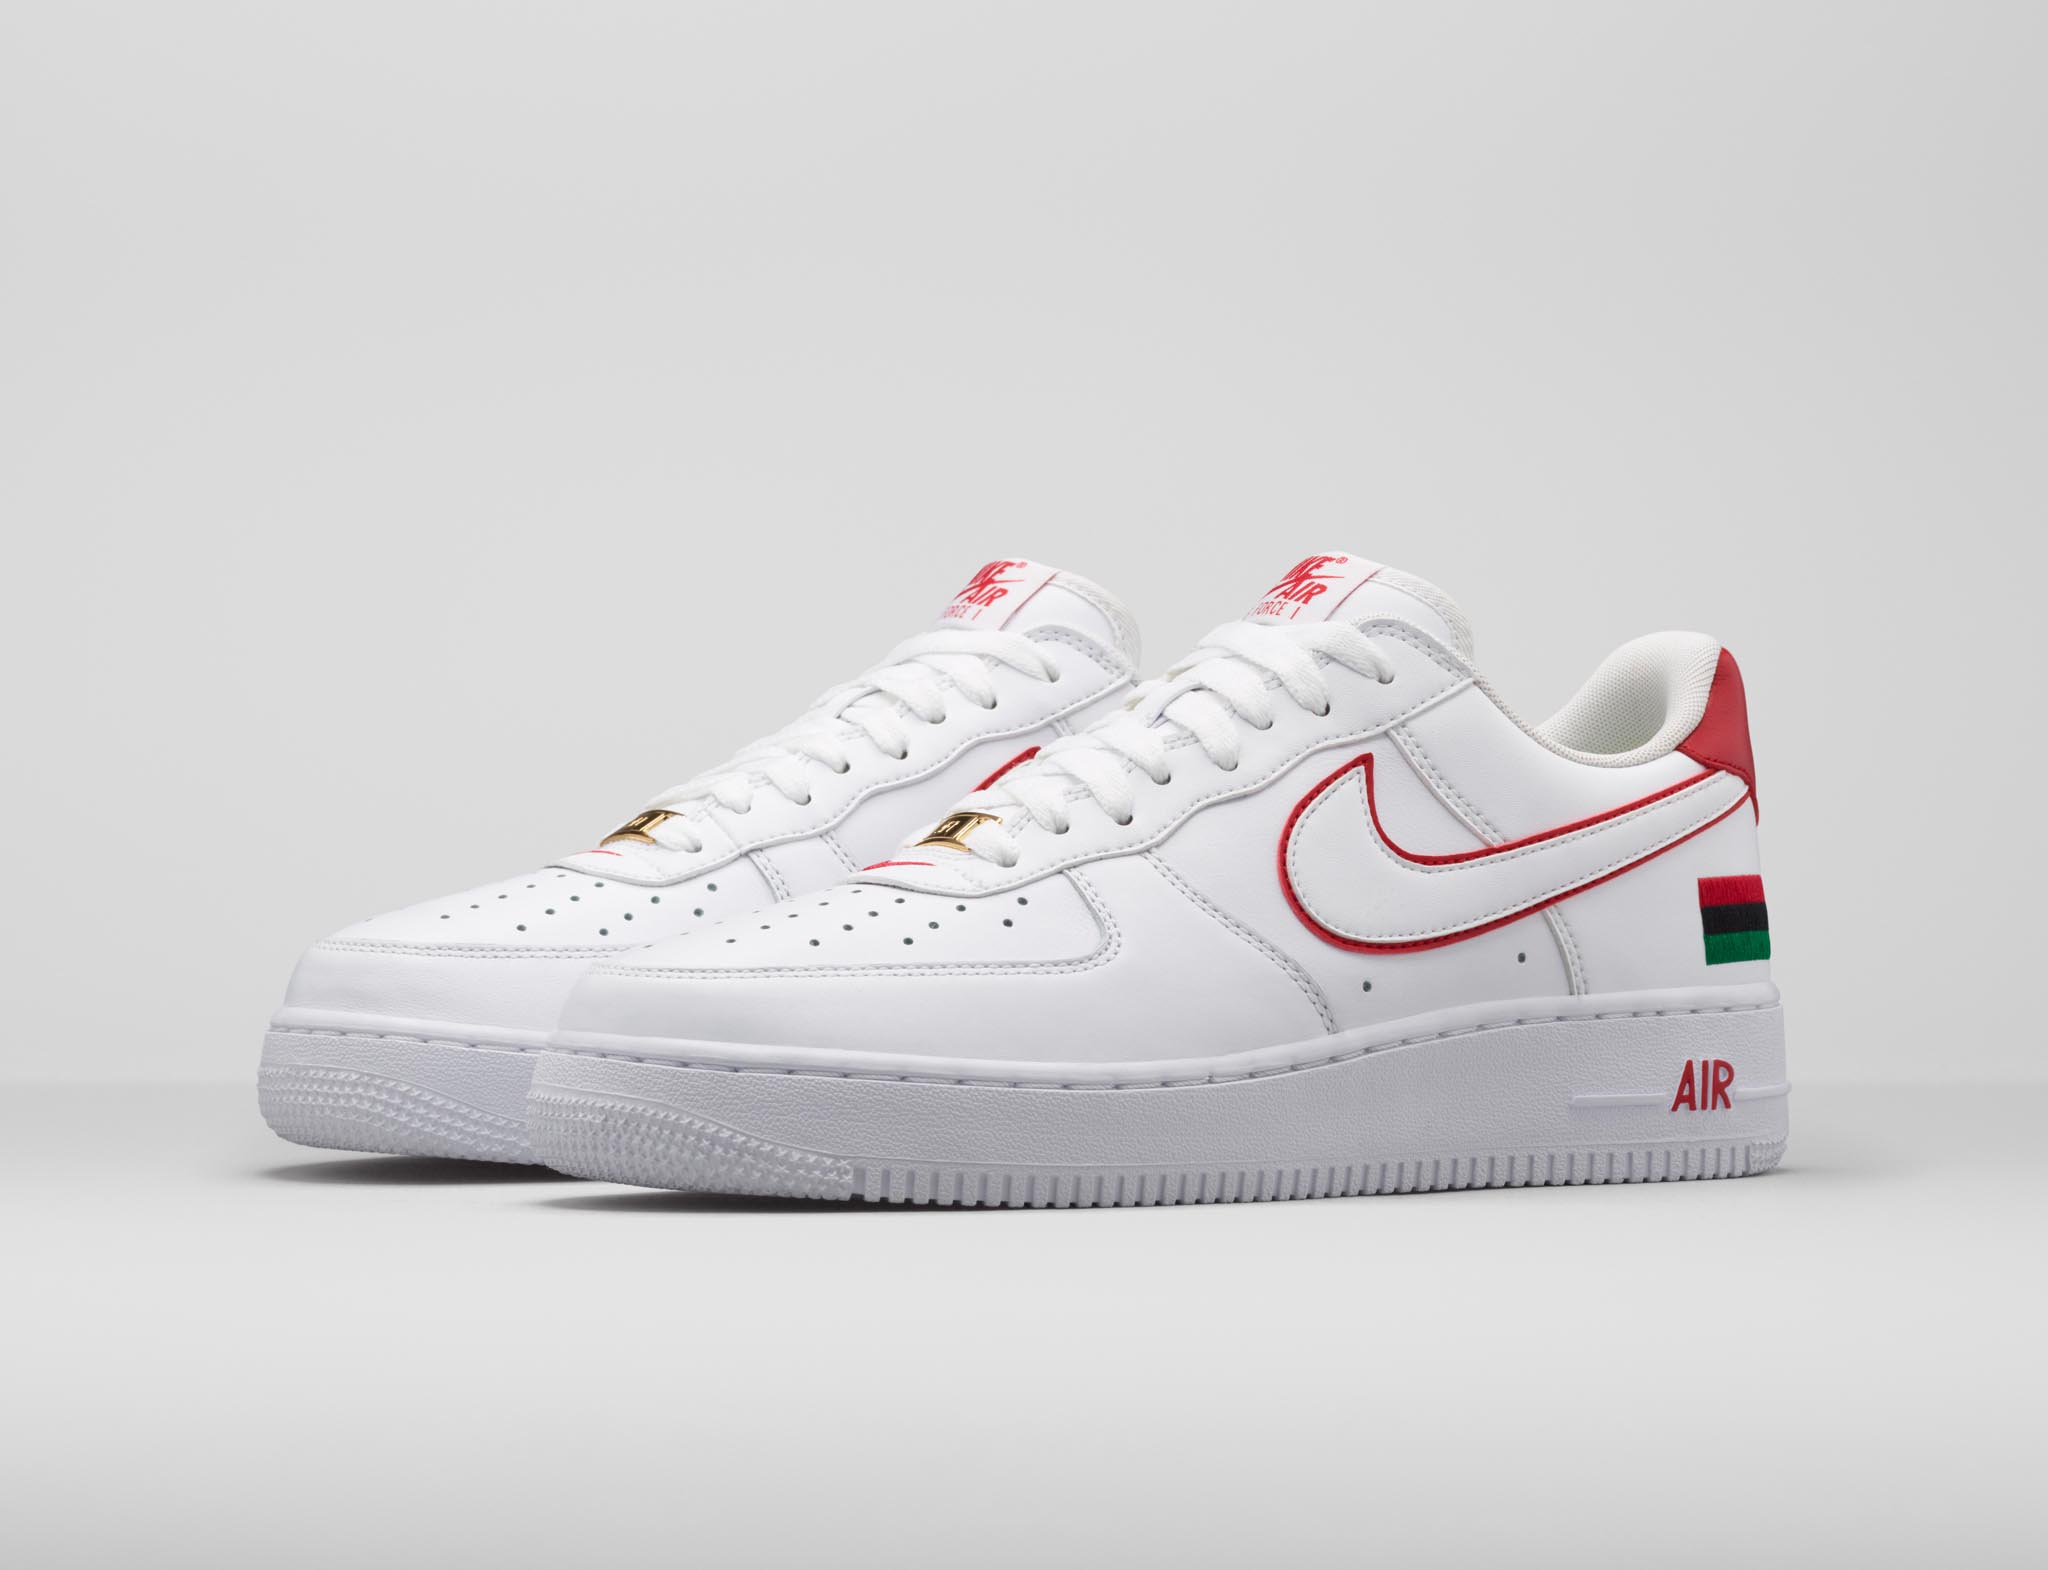 Nike Air Force 1 Rétro Bhm Qs - Université Blanc Rouge Et Or